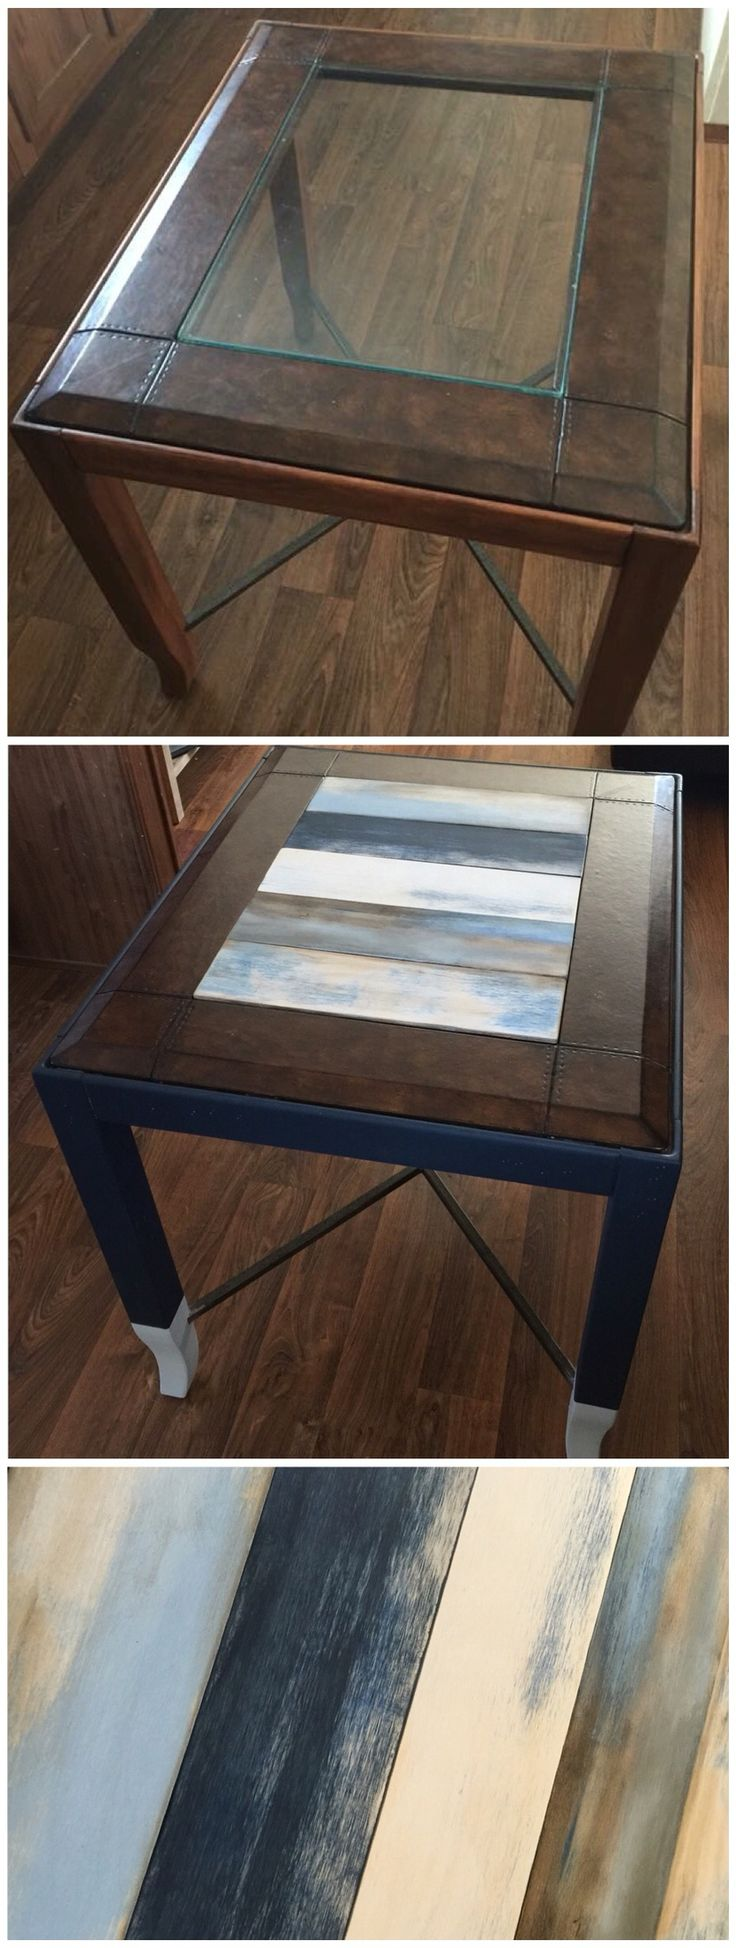 End Table Paint Ideas Best 25 Painting End Tables Ideas On Pinterest Redo End Tables